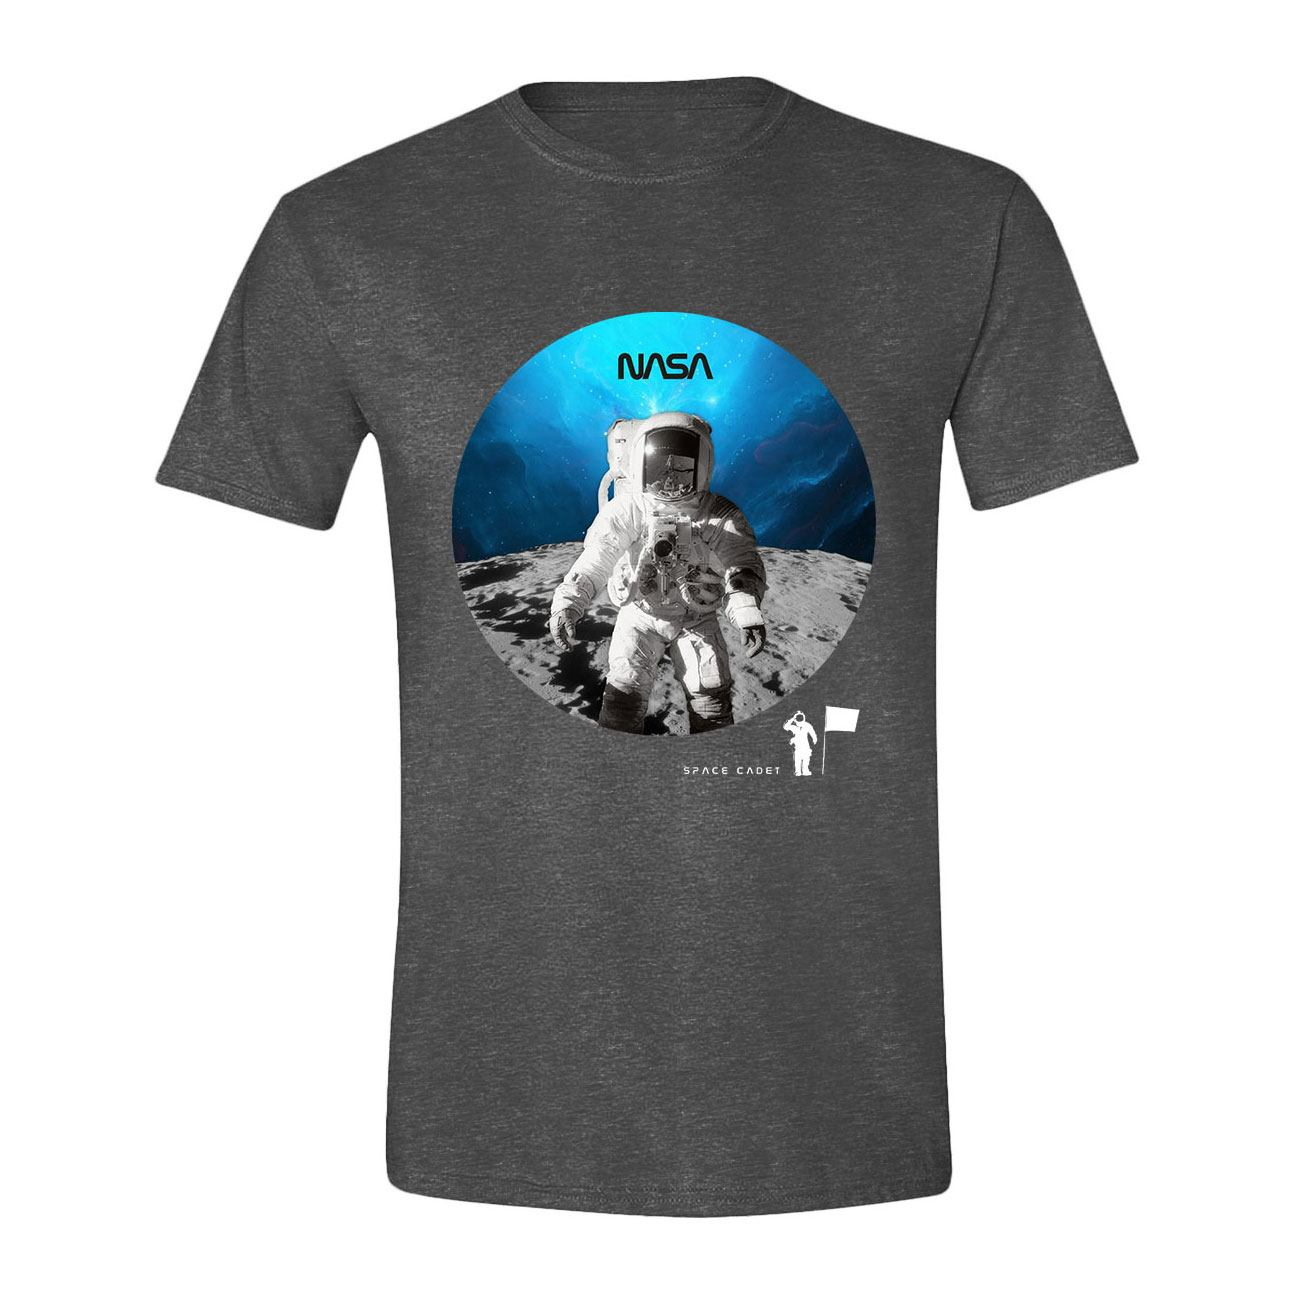 NASA T-Shirt Buzz Aldrin Desolation Size L